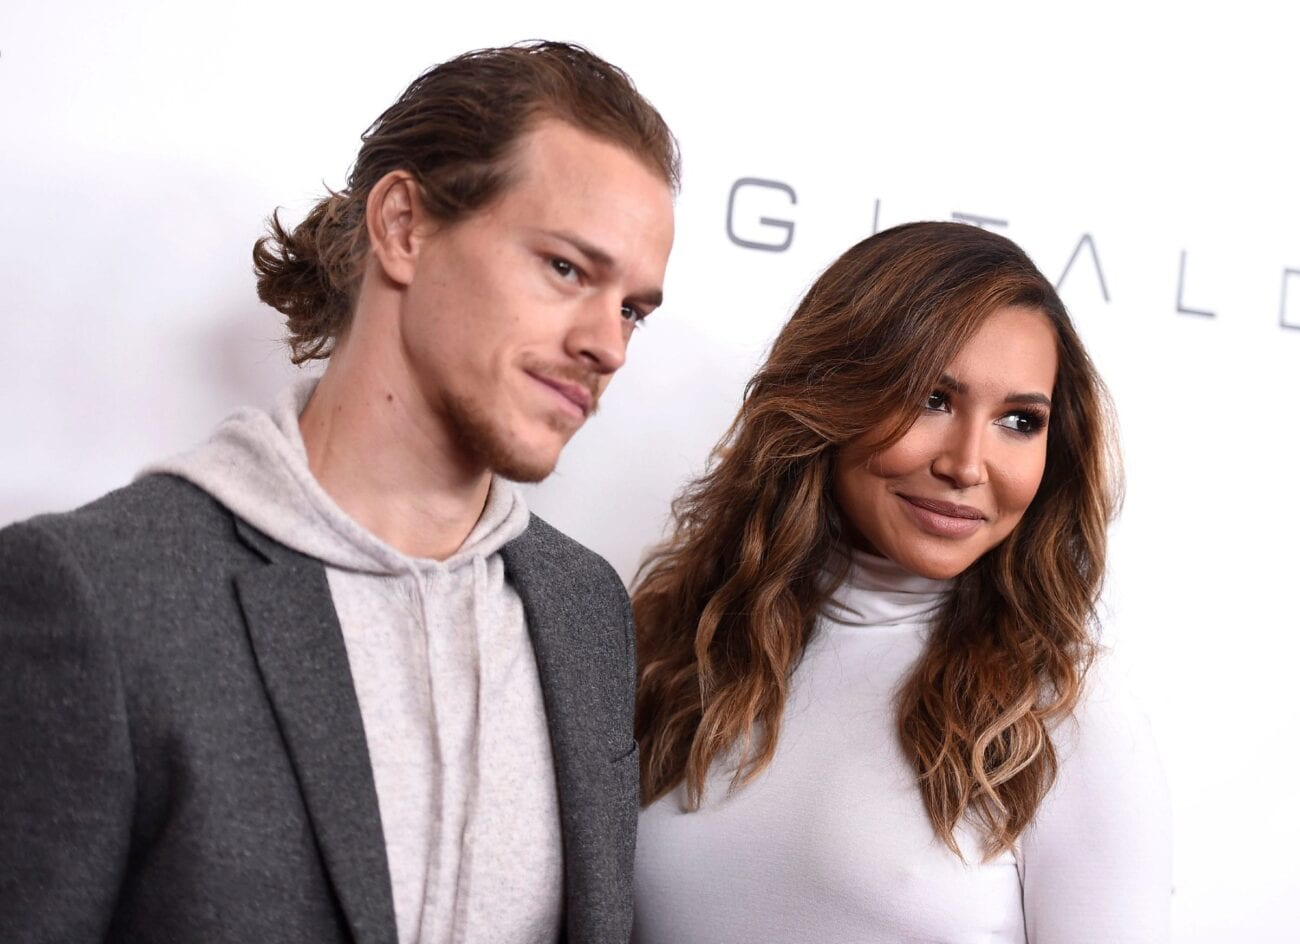 Recently people found out Naya Rivera's sister moved in with Ryan Dorsey, the father of her son. Rumors began to fly immediately.